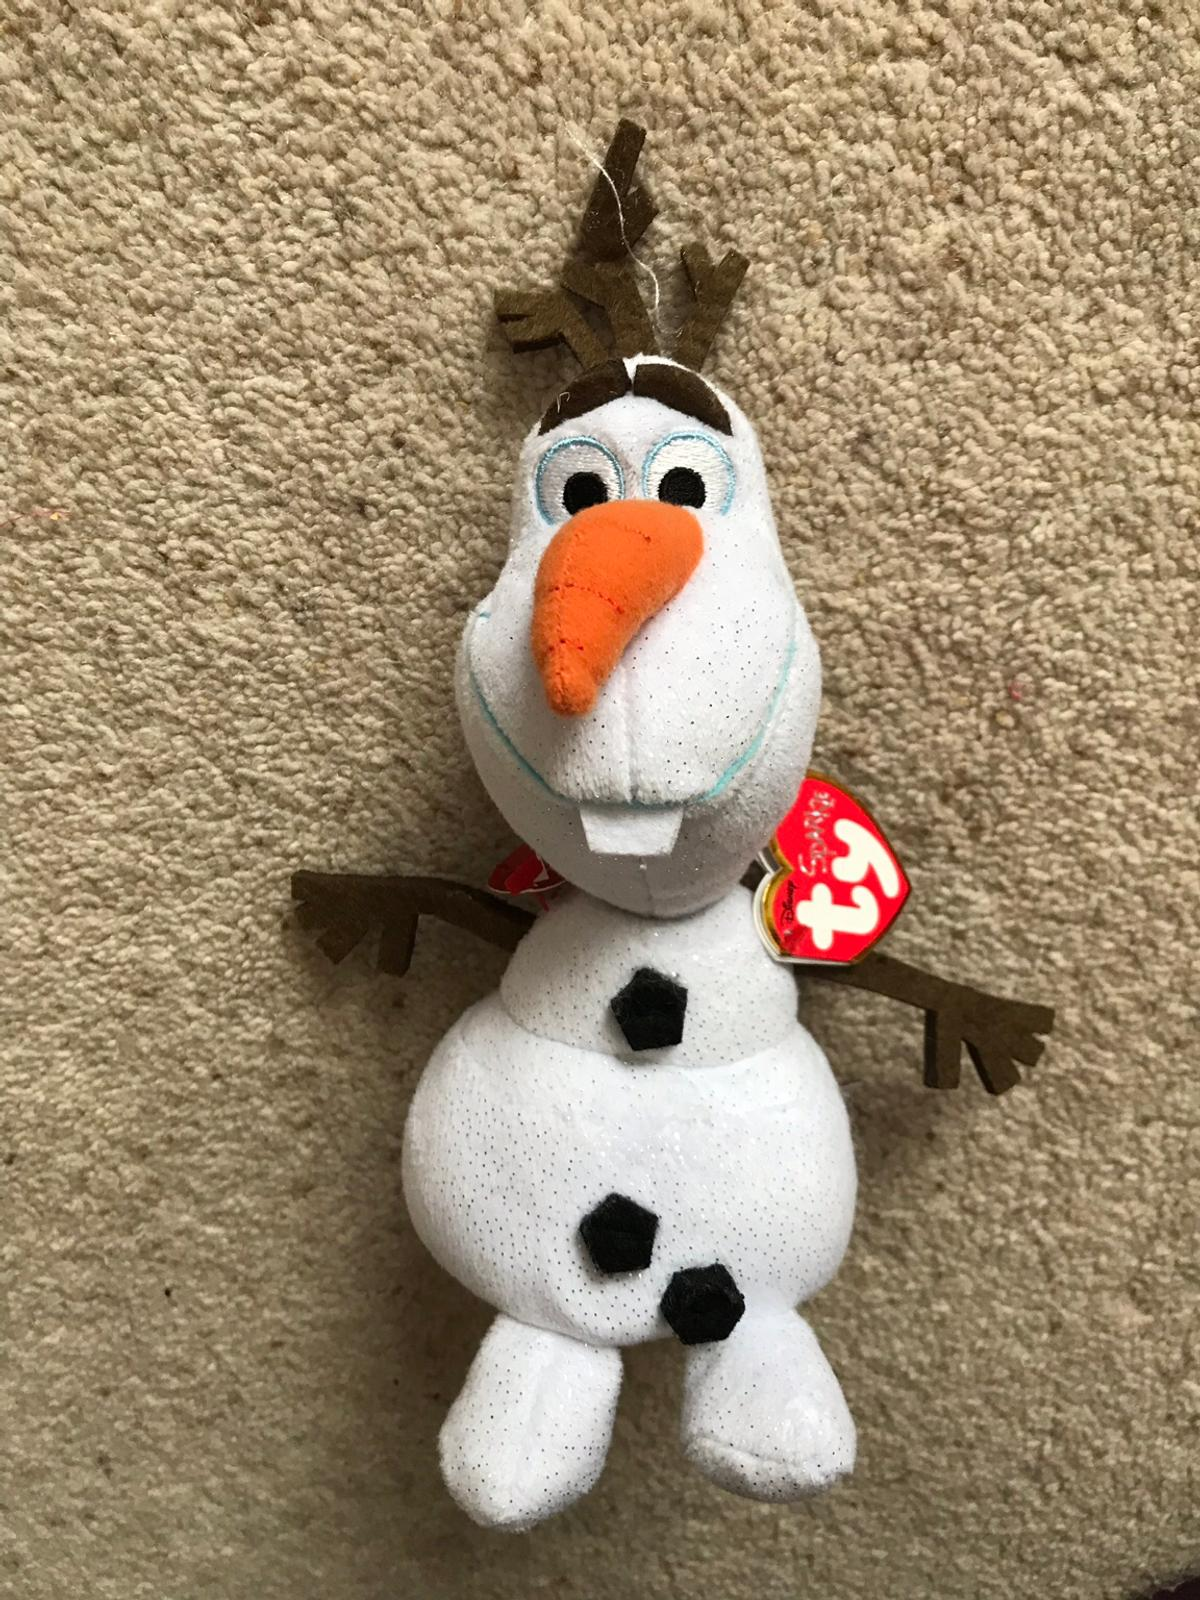 All in excellent as new condition. Olaf speaks. £1 each or £5 for all.